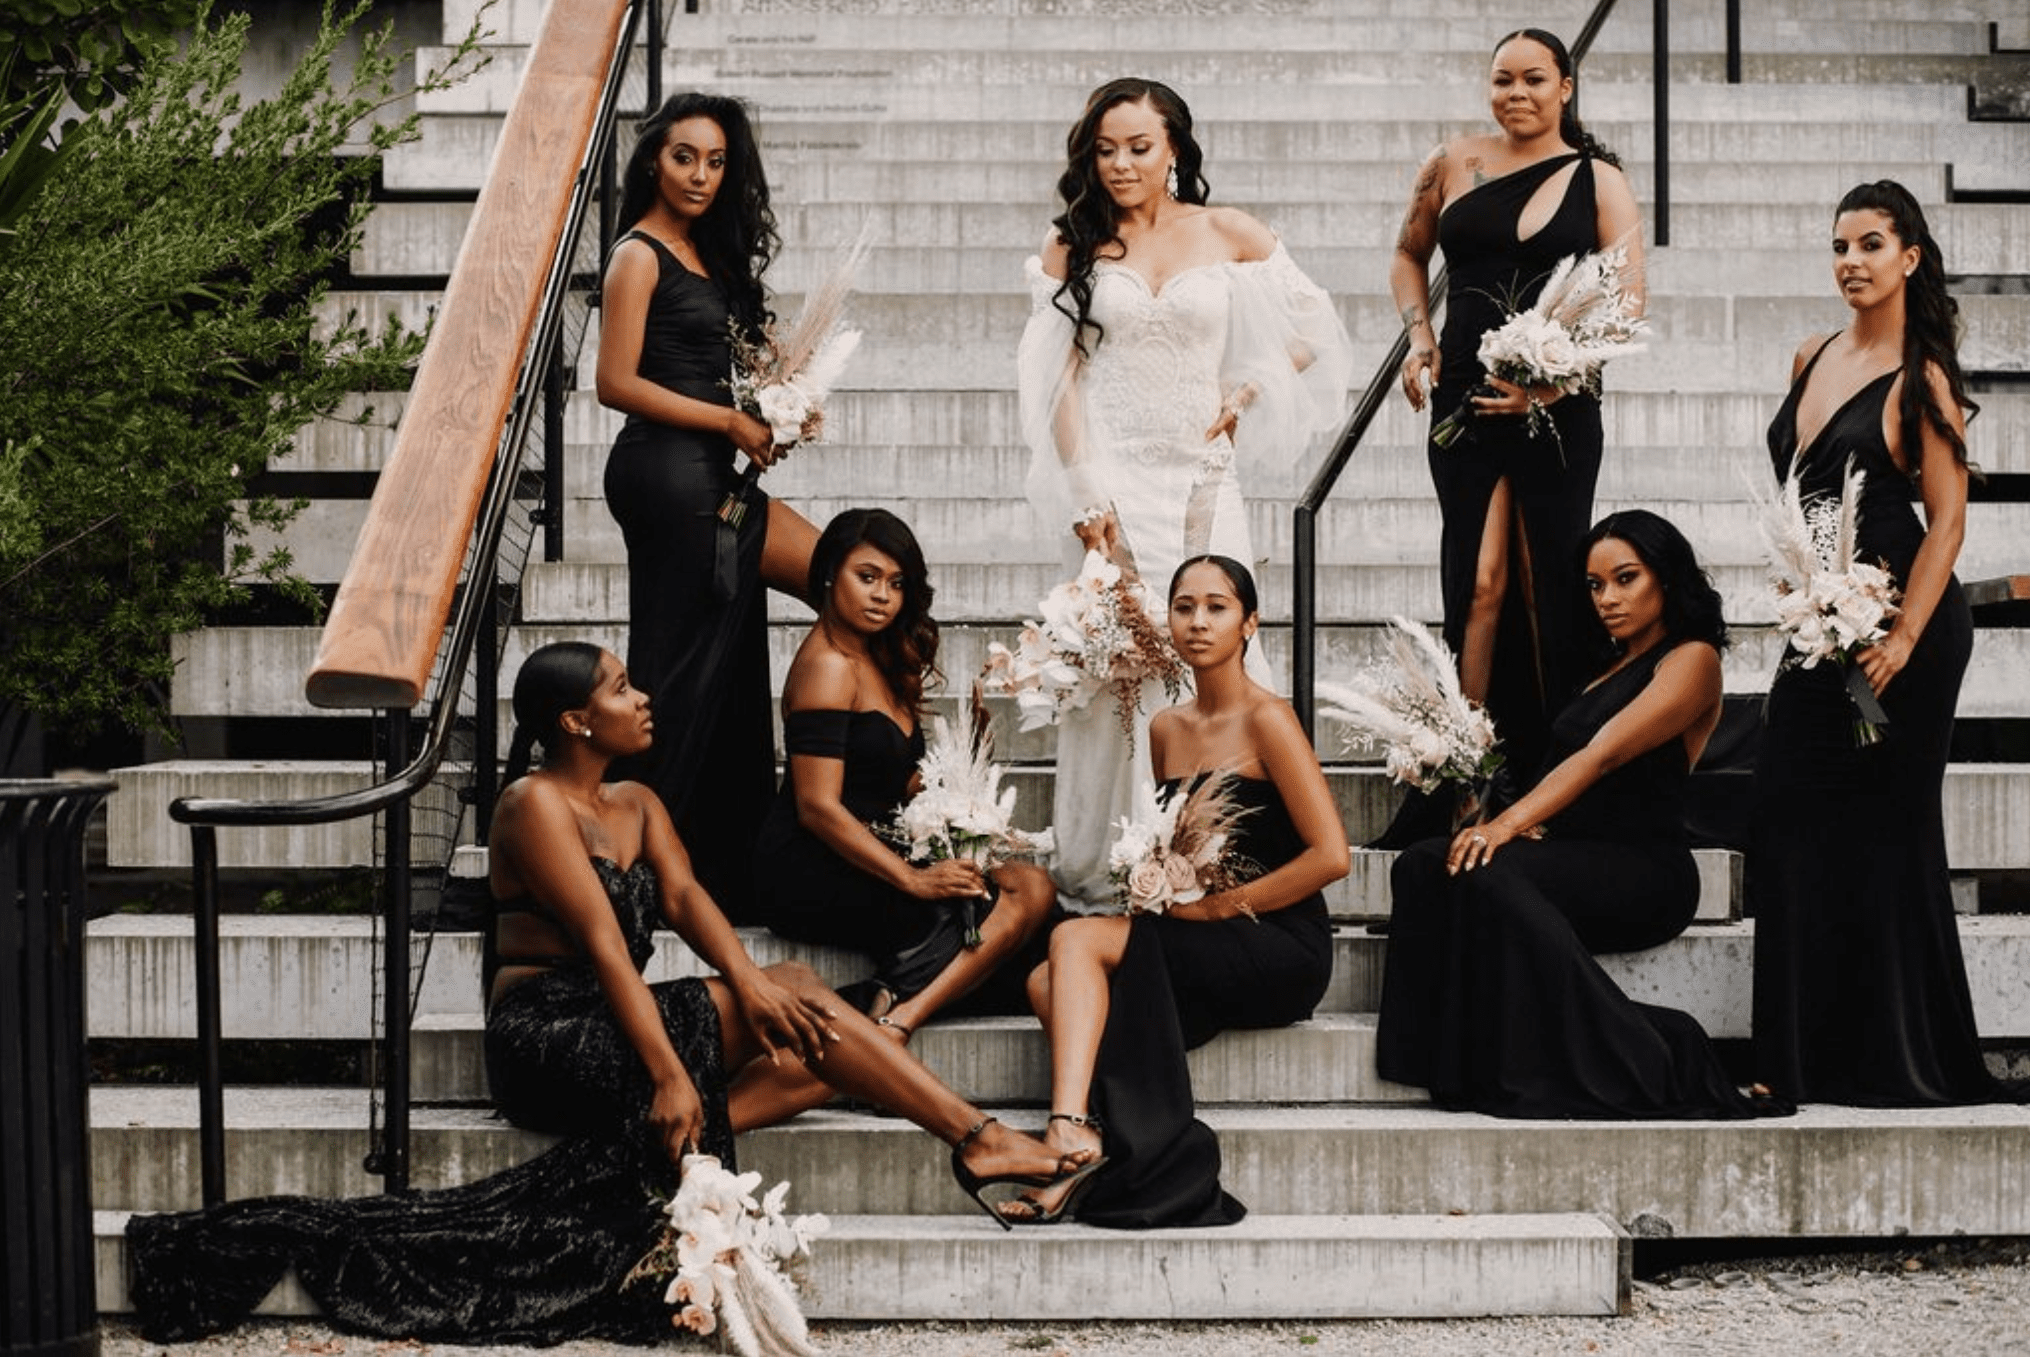 Bride with fashionable bridesmaids in black gowns